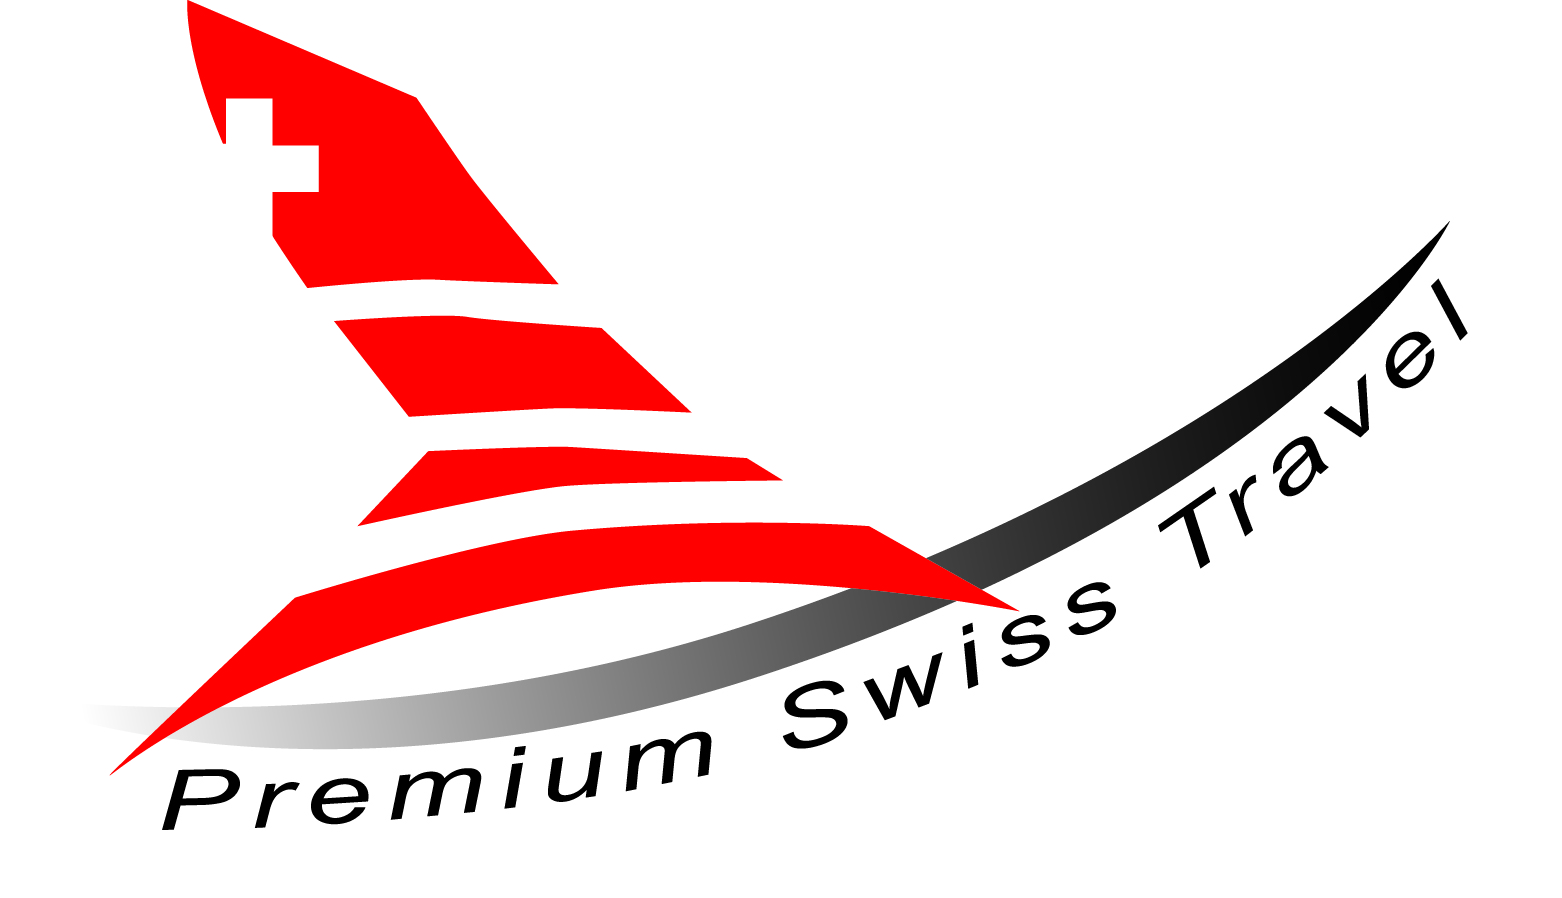 Premium Swiss Travel | Daily Archives - Premium Swiss Travel